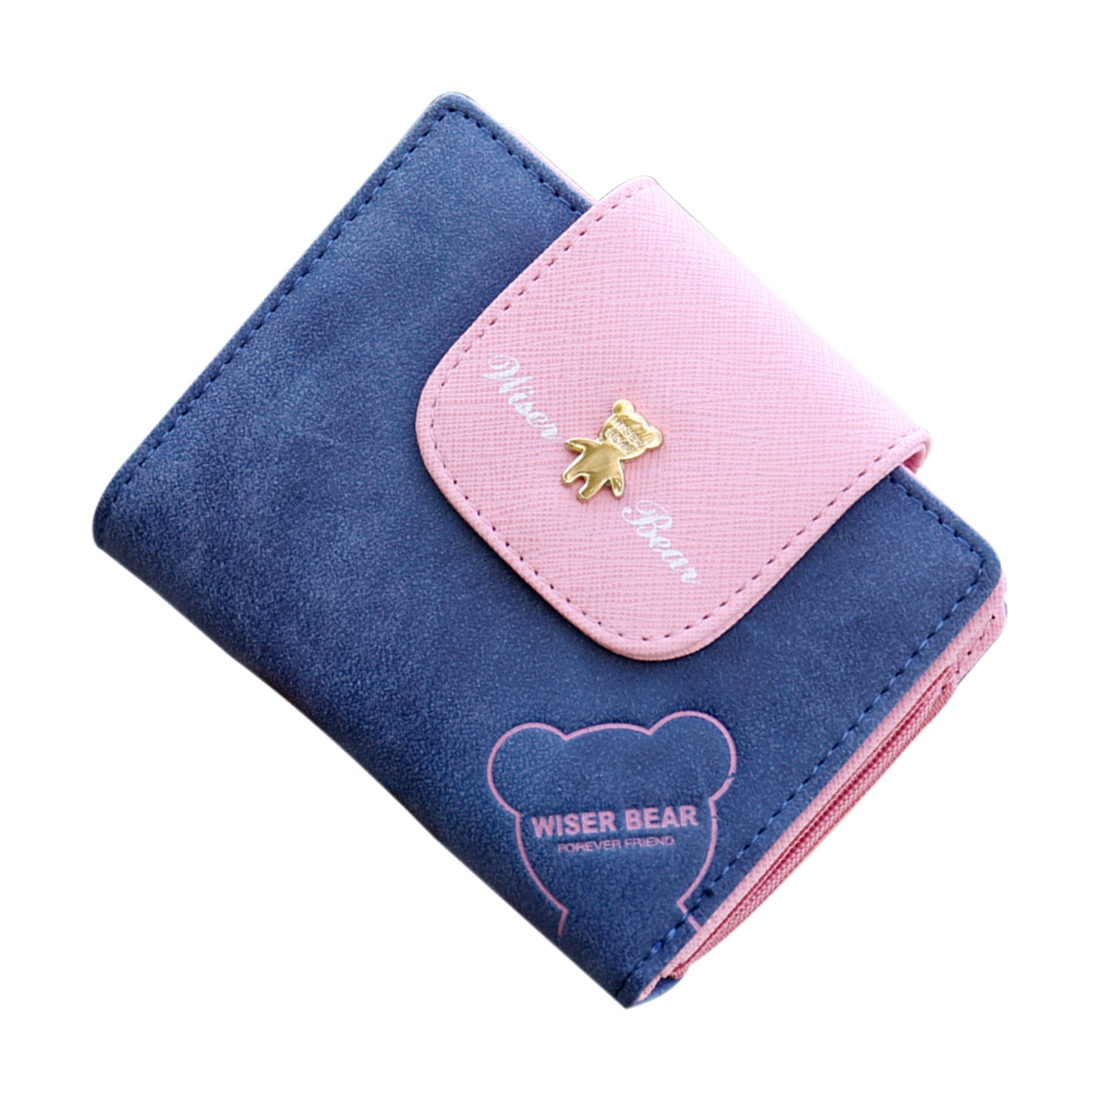 Fashion Lovely Bear Wallet Female Leather Small Change Clasp Purse Money Card Coin Holder Girls Women Purses